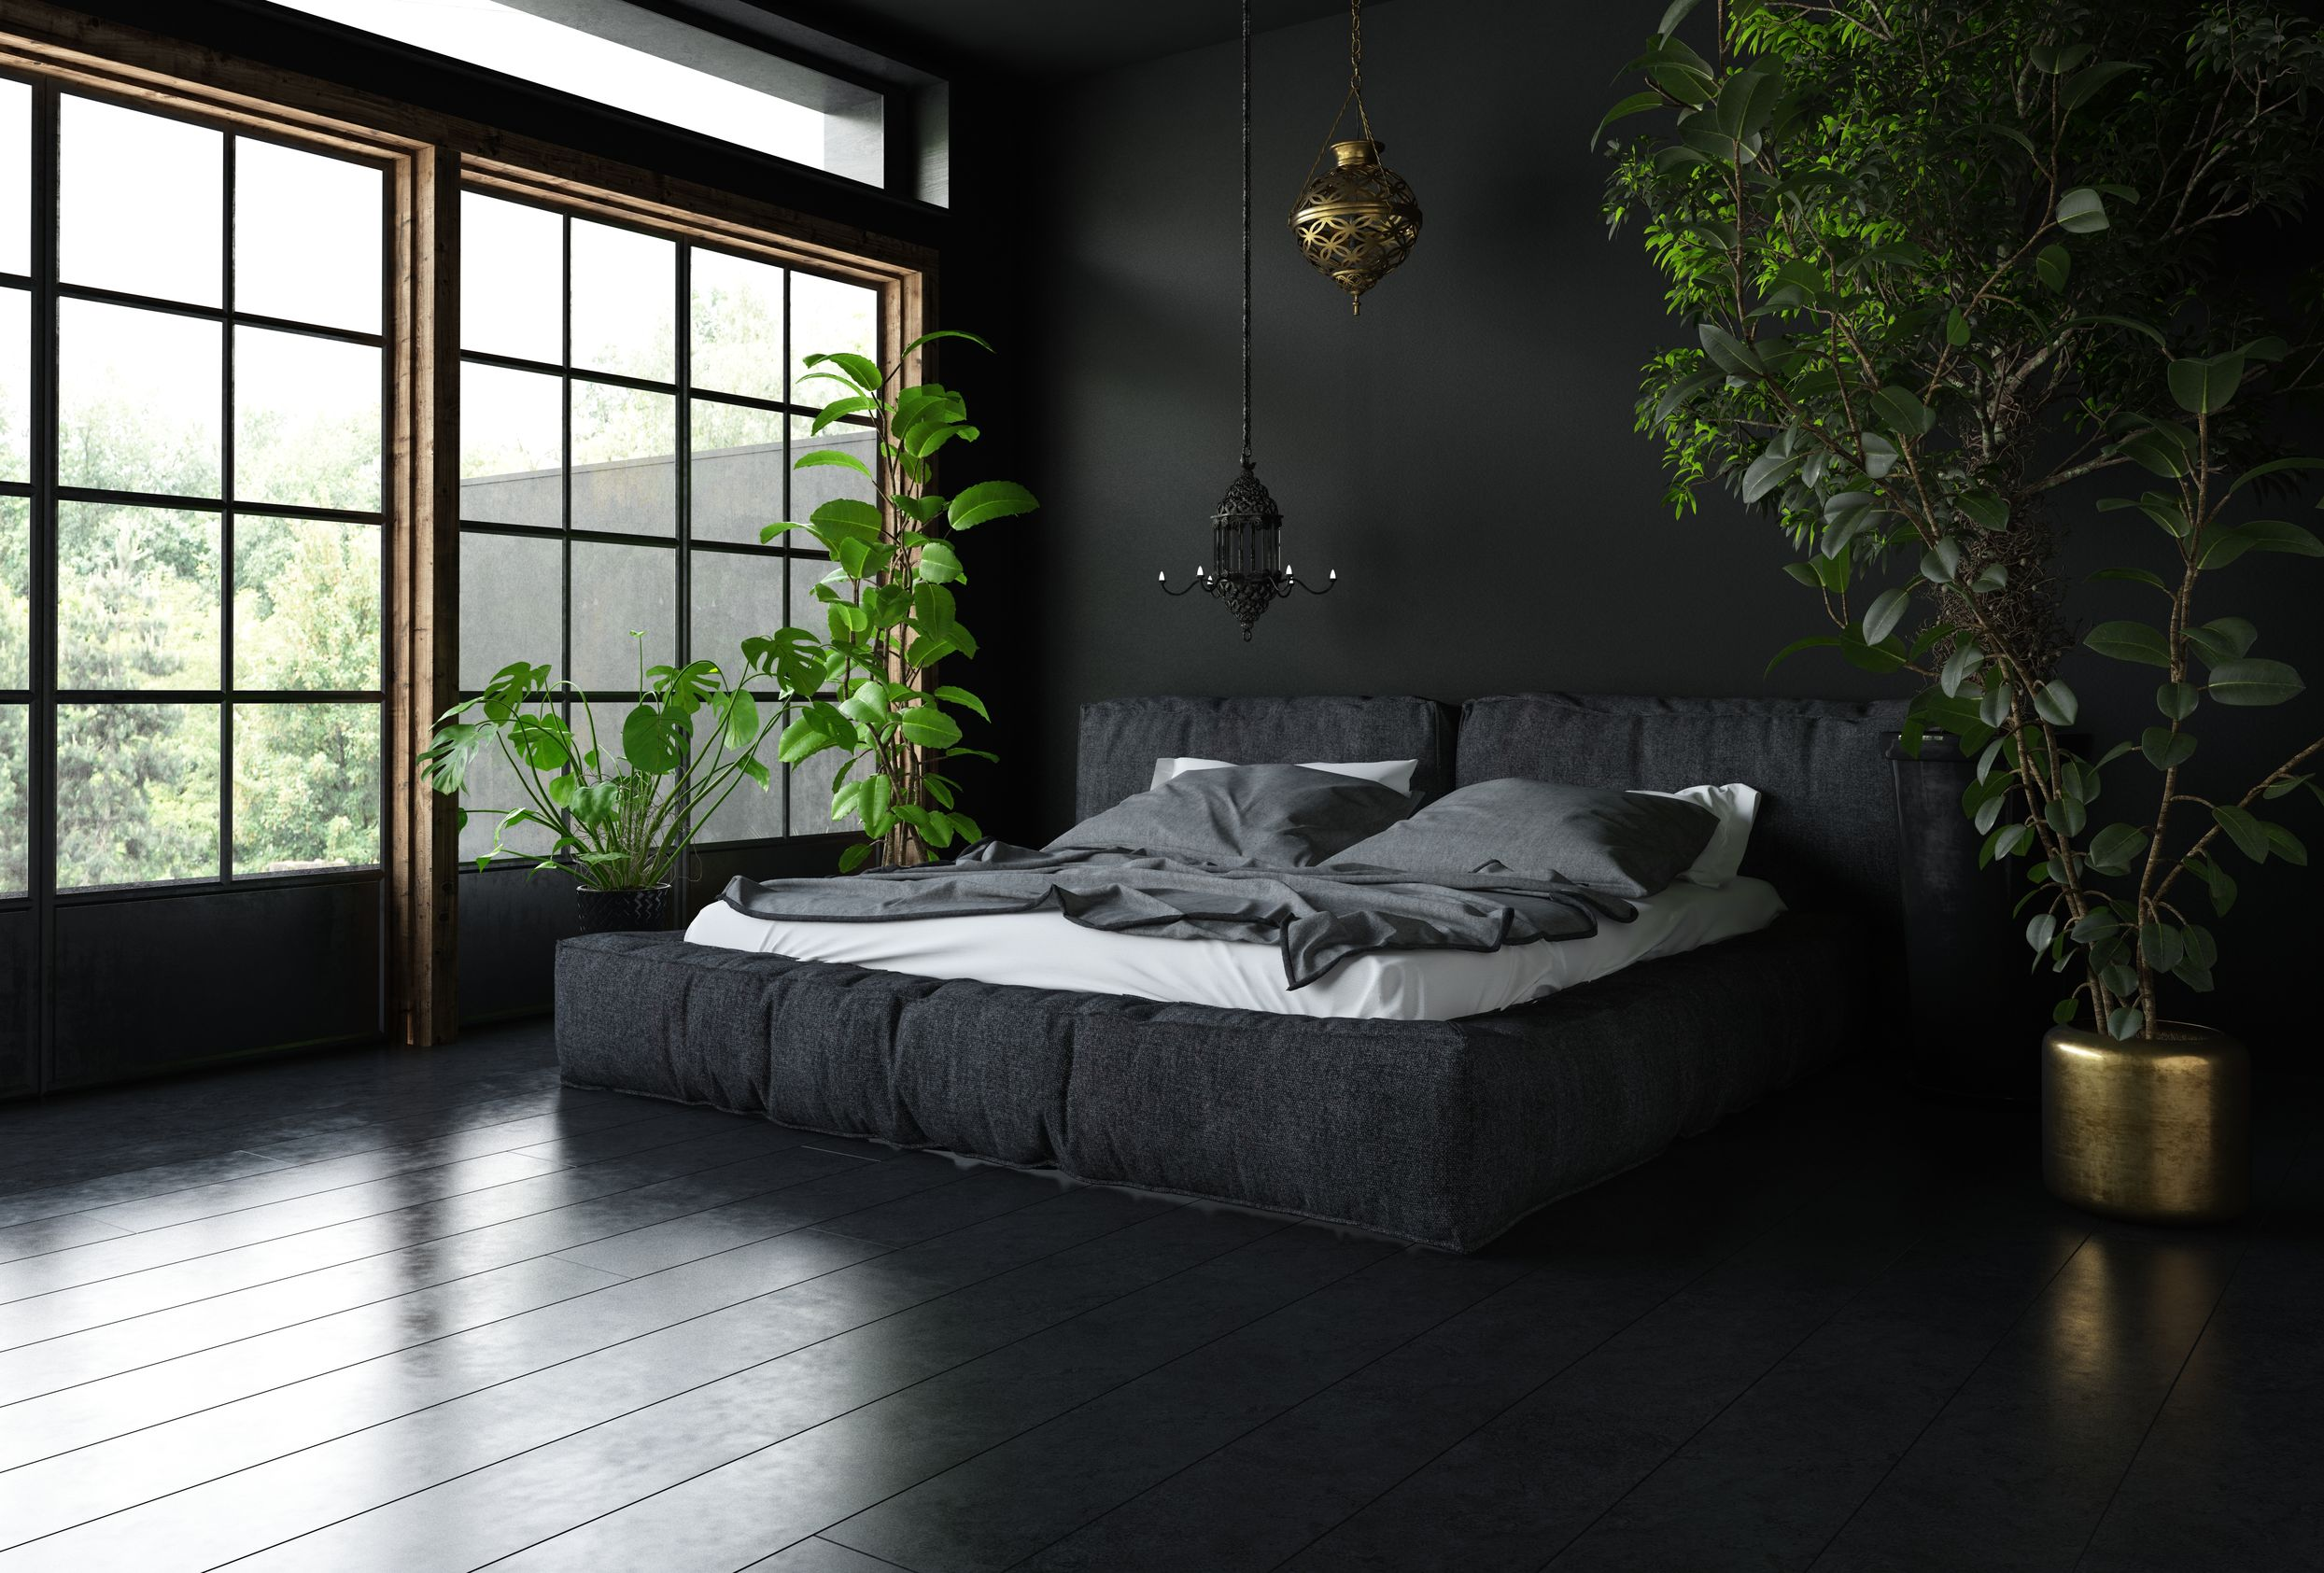 Bedroom in black style